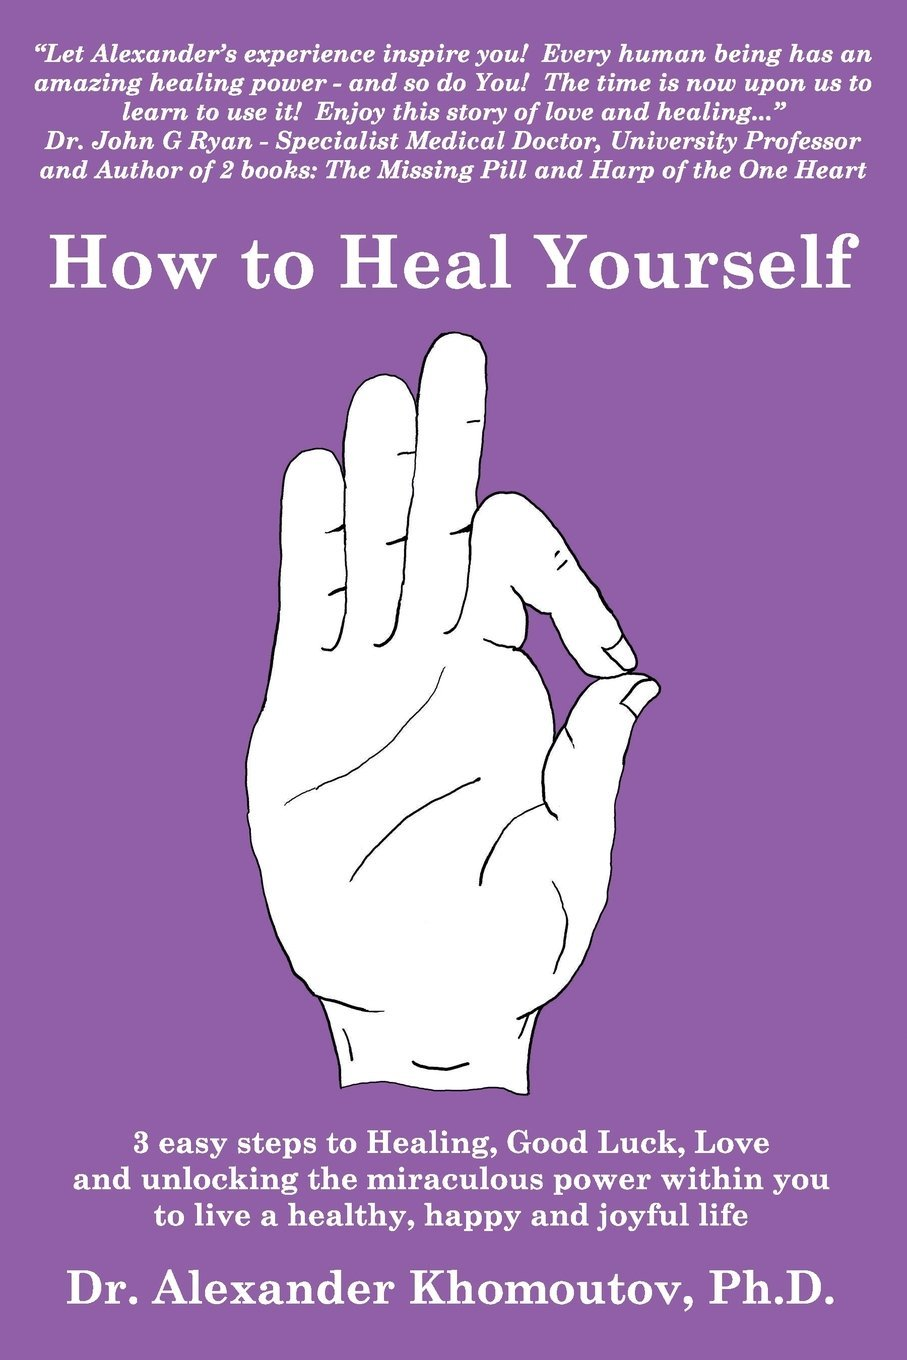 How to heal yourself: 3 easy steps to Healing, Good Luck, Love and unlocking the miraculous power within you to live  a healthy, happy and joyful life - book back cover